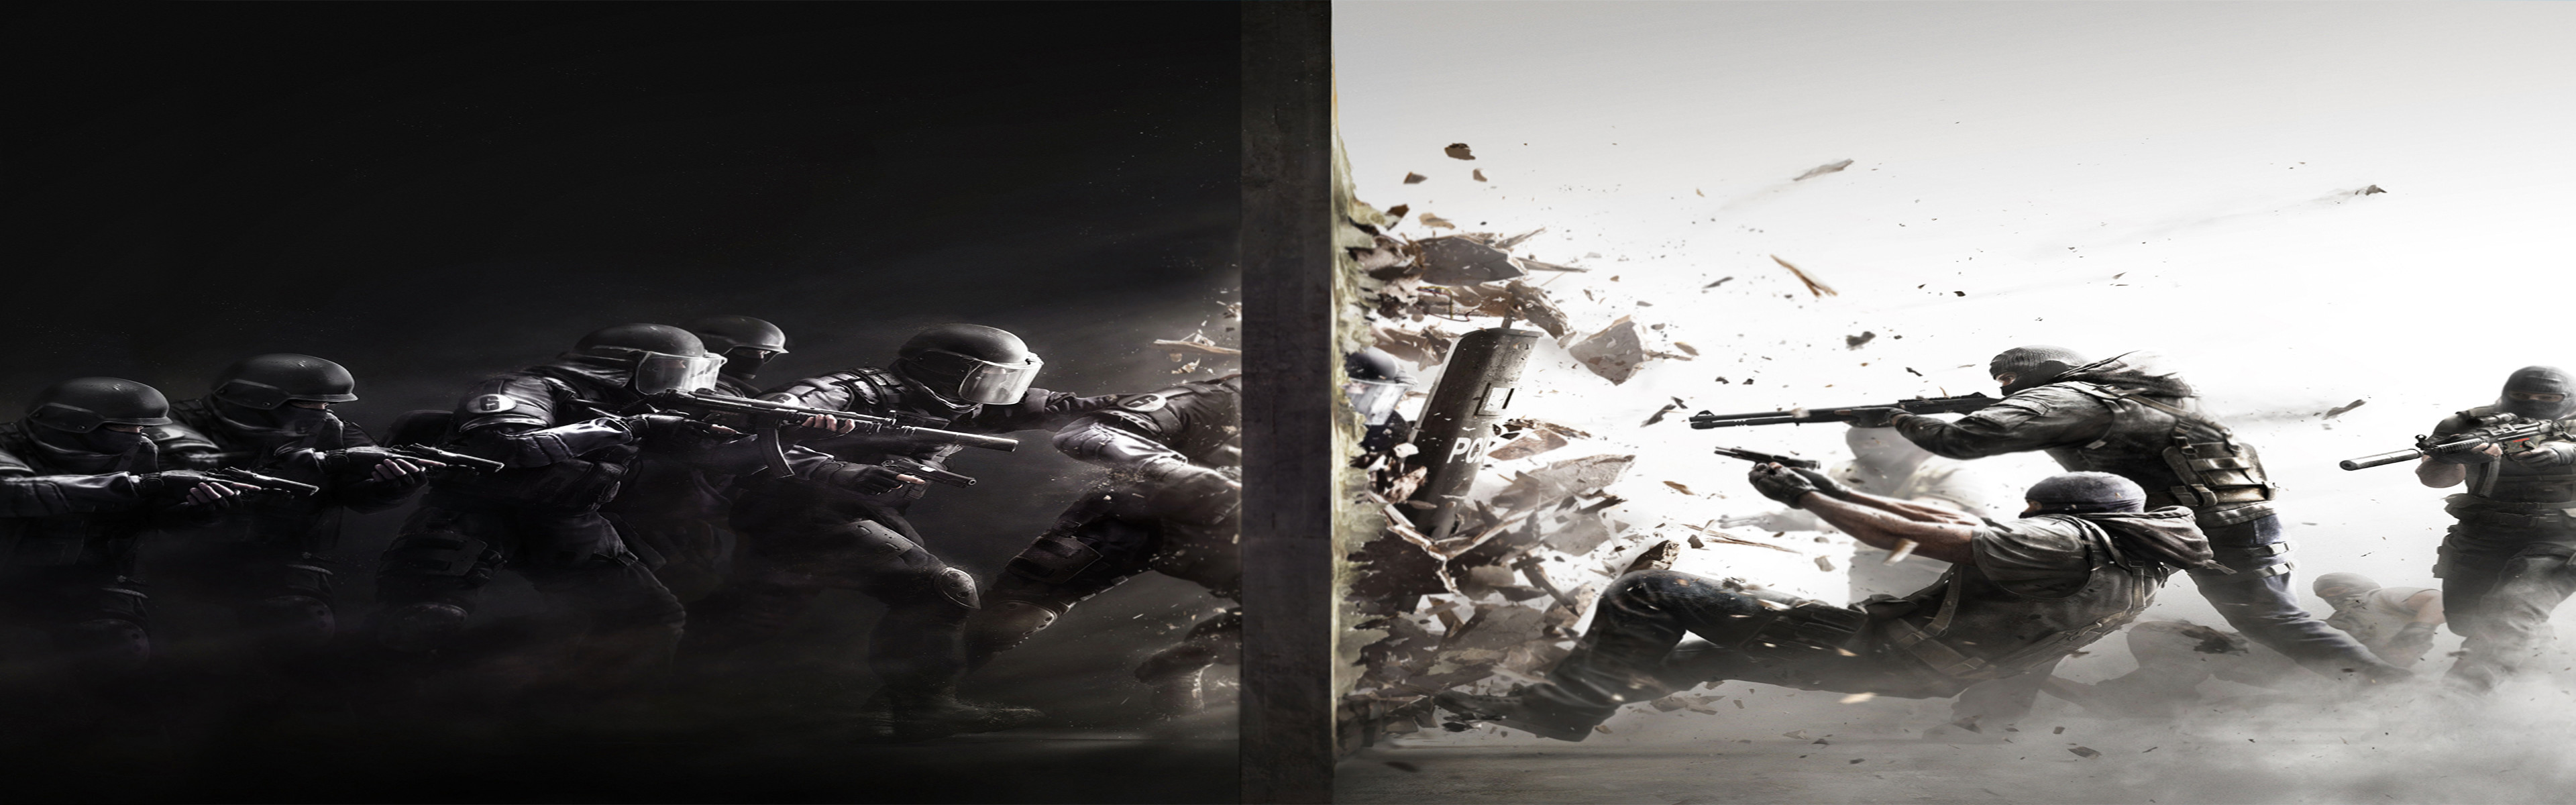 3840x1200 Dual screen wallpaper